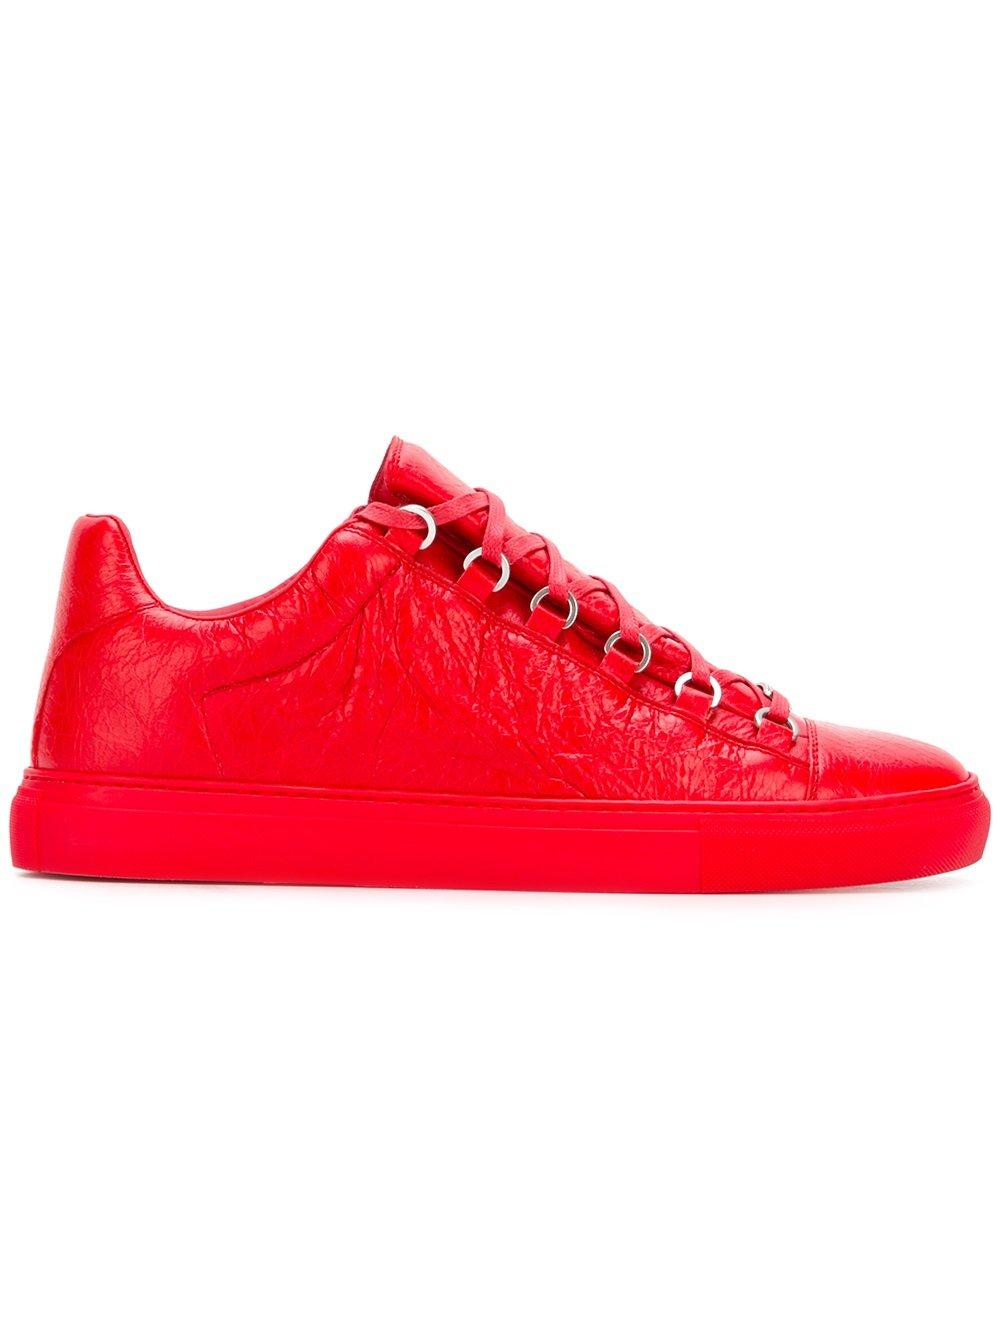 a19ea95a4a6d8 Balenciaga Arena Low-Top Leather Trainers in Red for Men